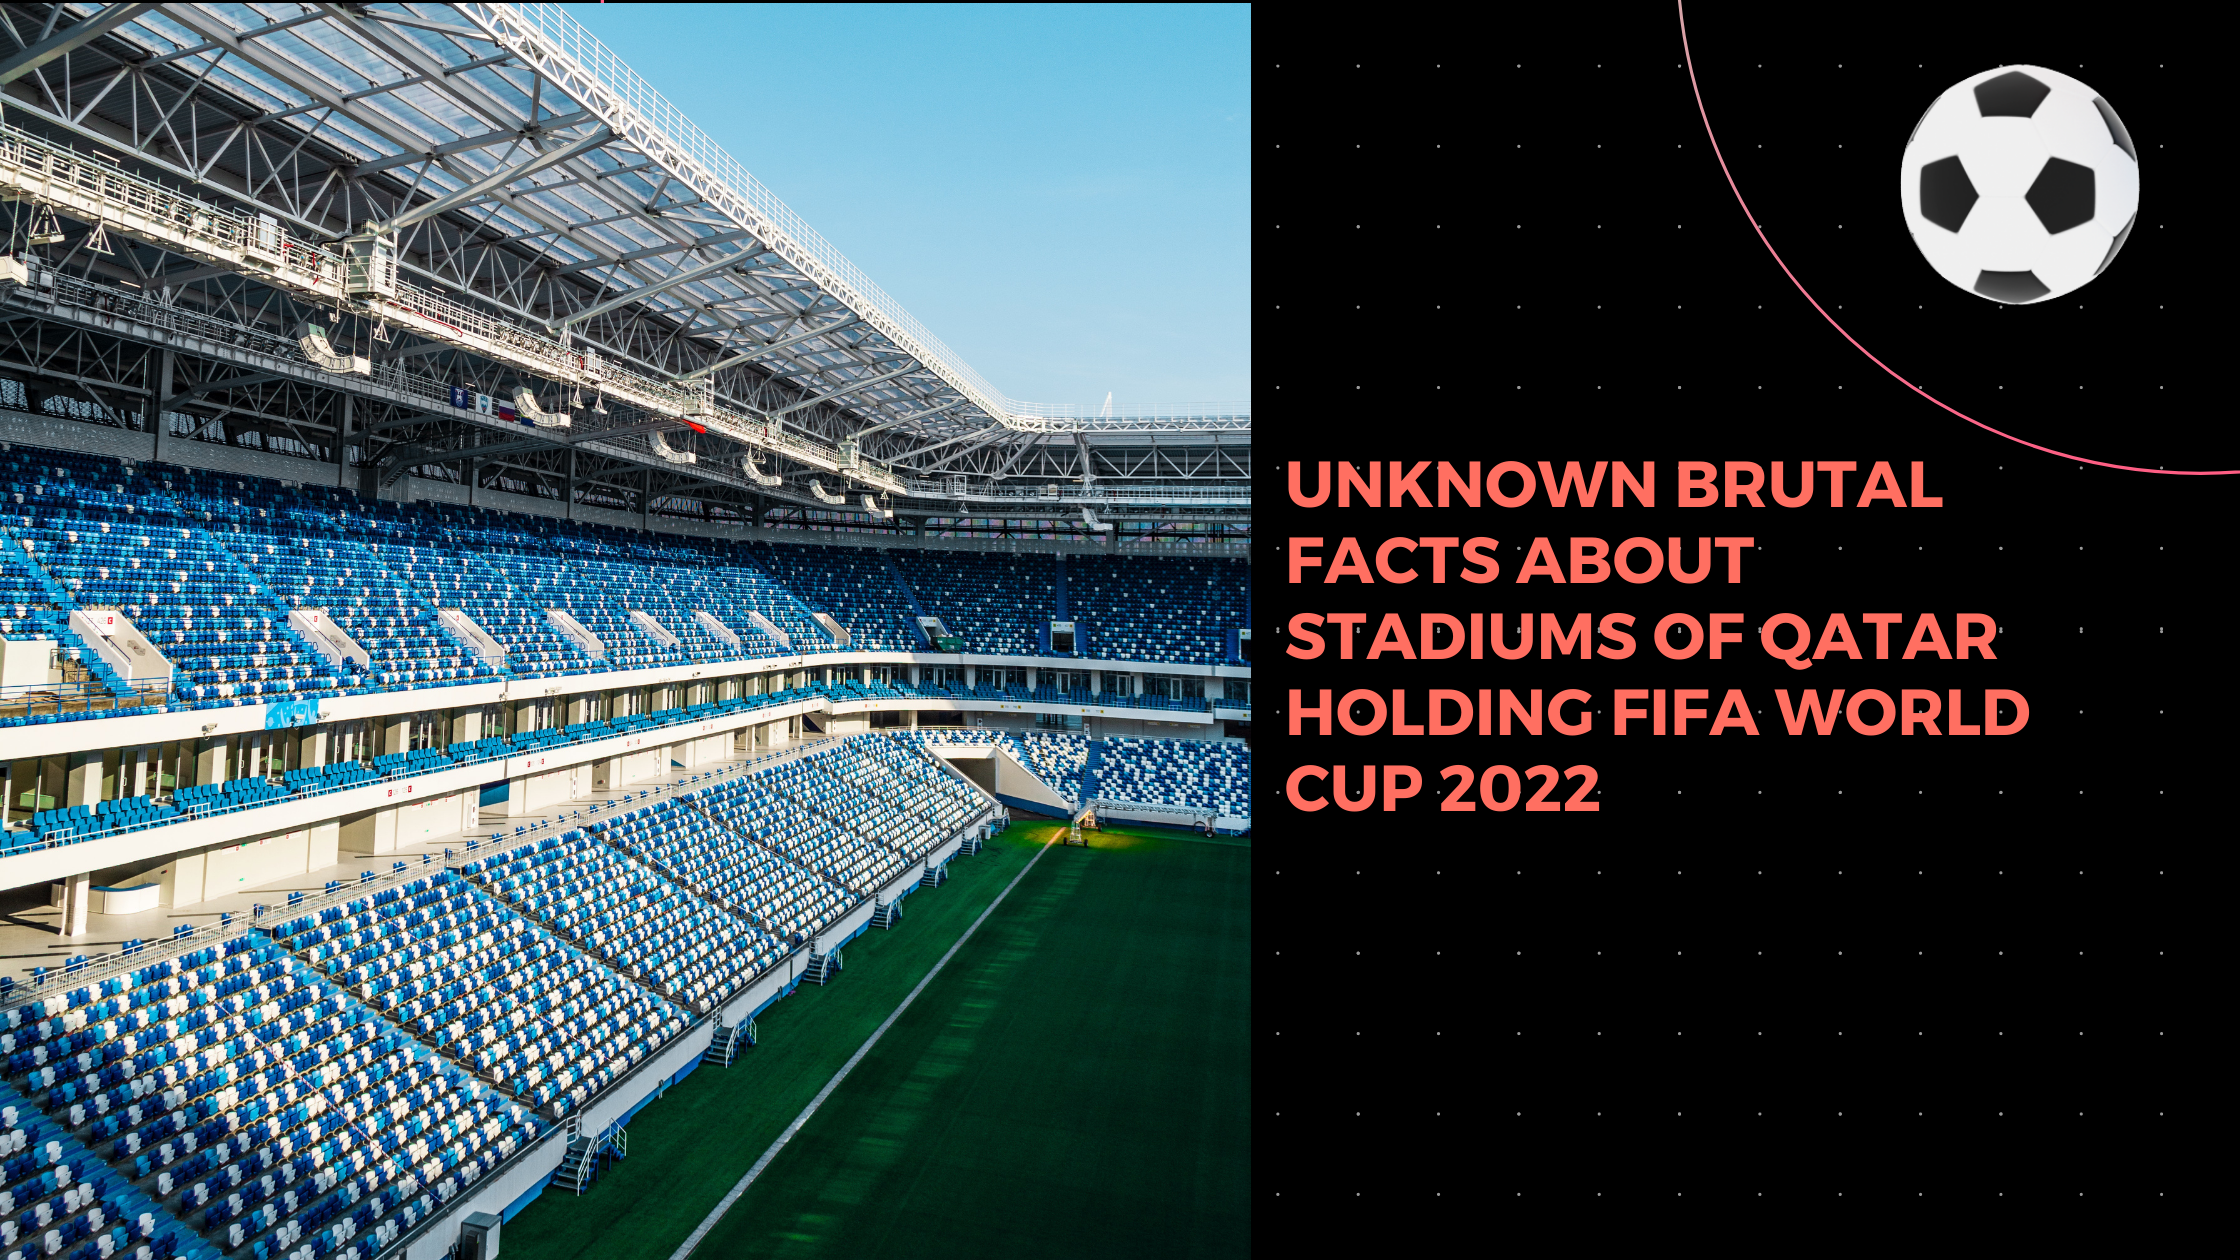 Unknown brutal facts about stadiums of Qatar holding FIFA world cup'22